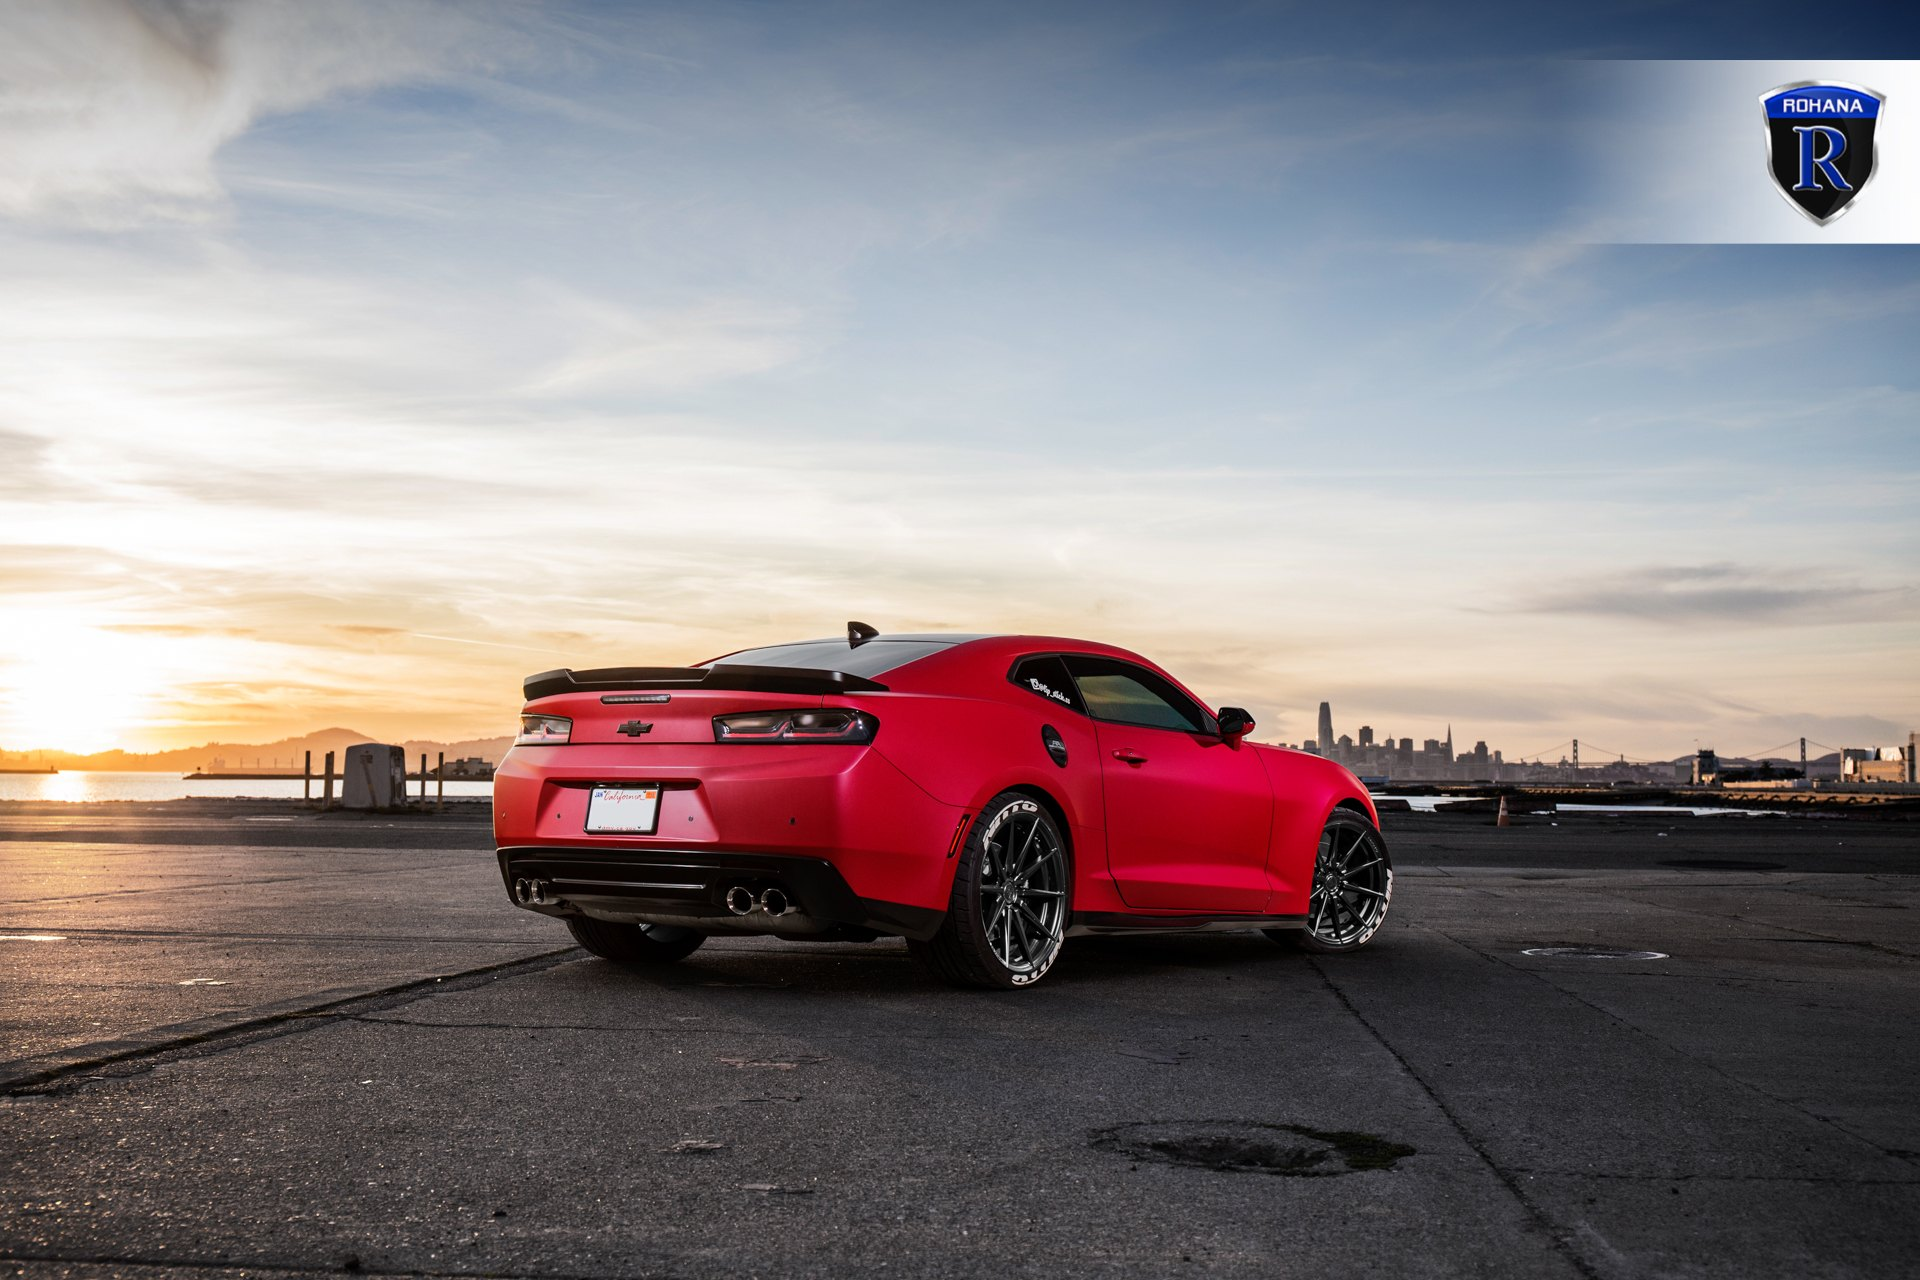 Aftermarket Rear Diffuser on Red Chevy Camaro SS - Photo by Rohana